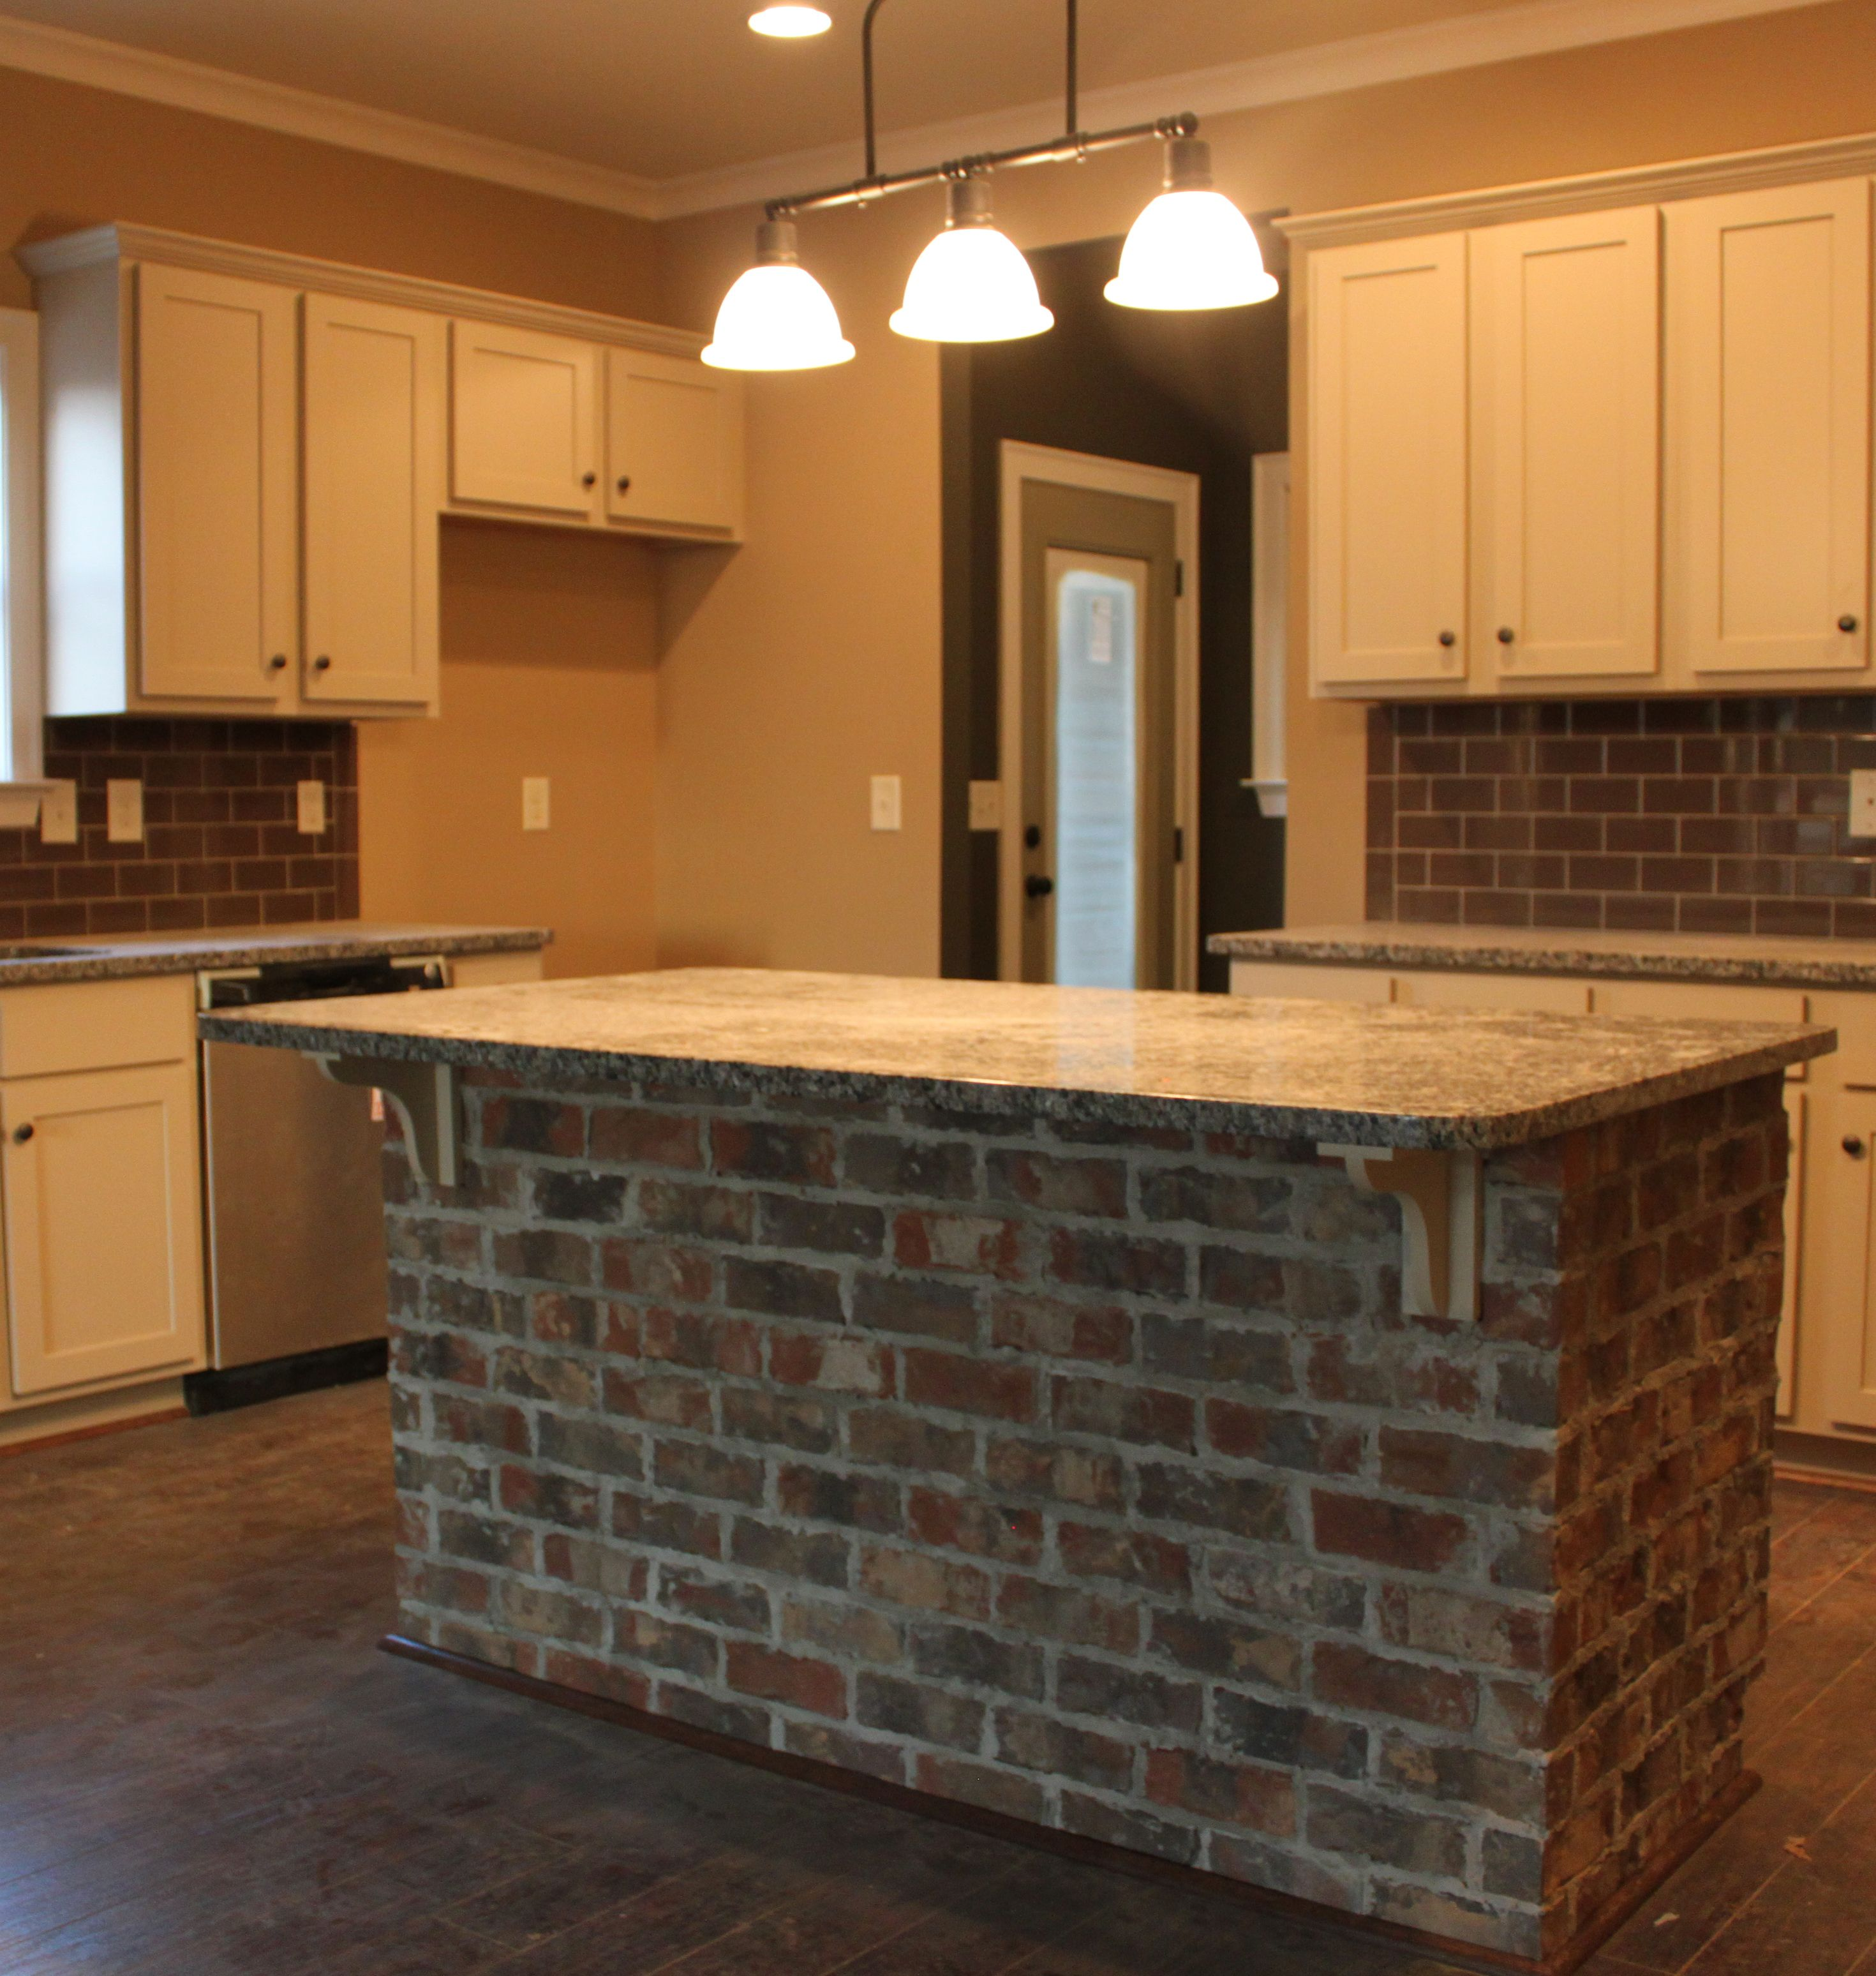 Brick Wall Kitchen, Kitchen Island, Home Kitchens